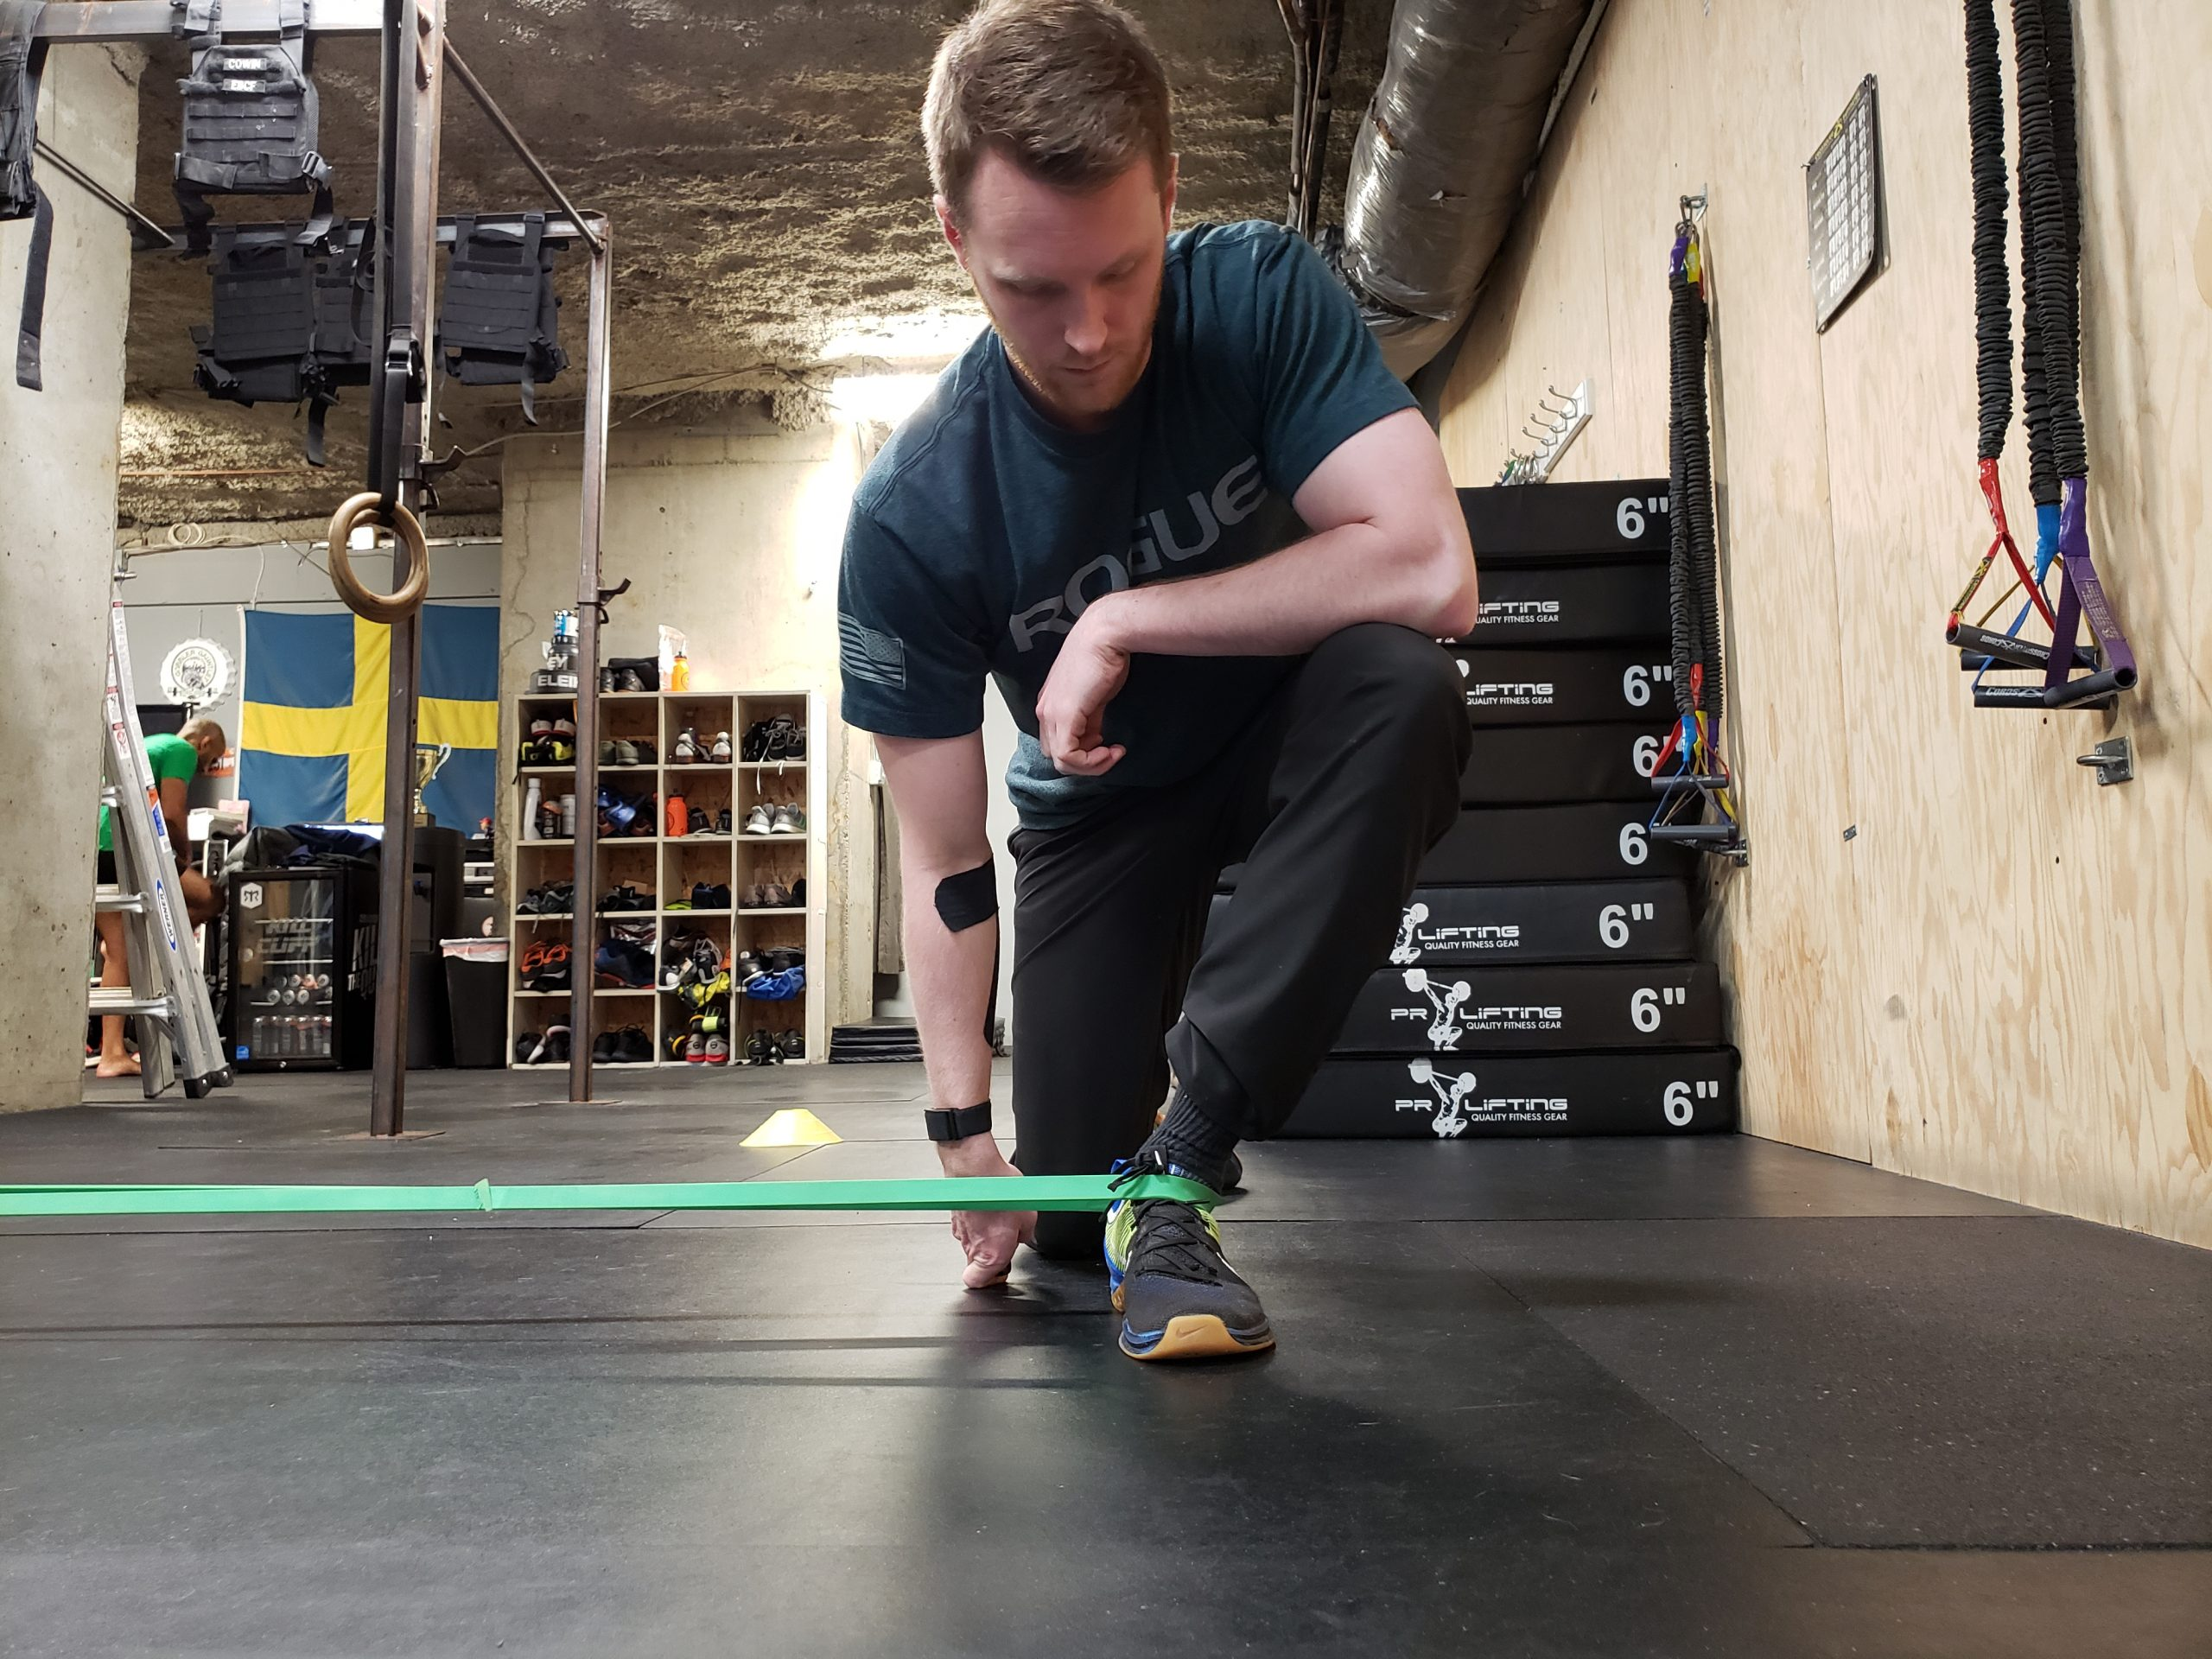 Exercises for ankle mobility… What works best?